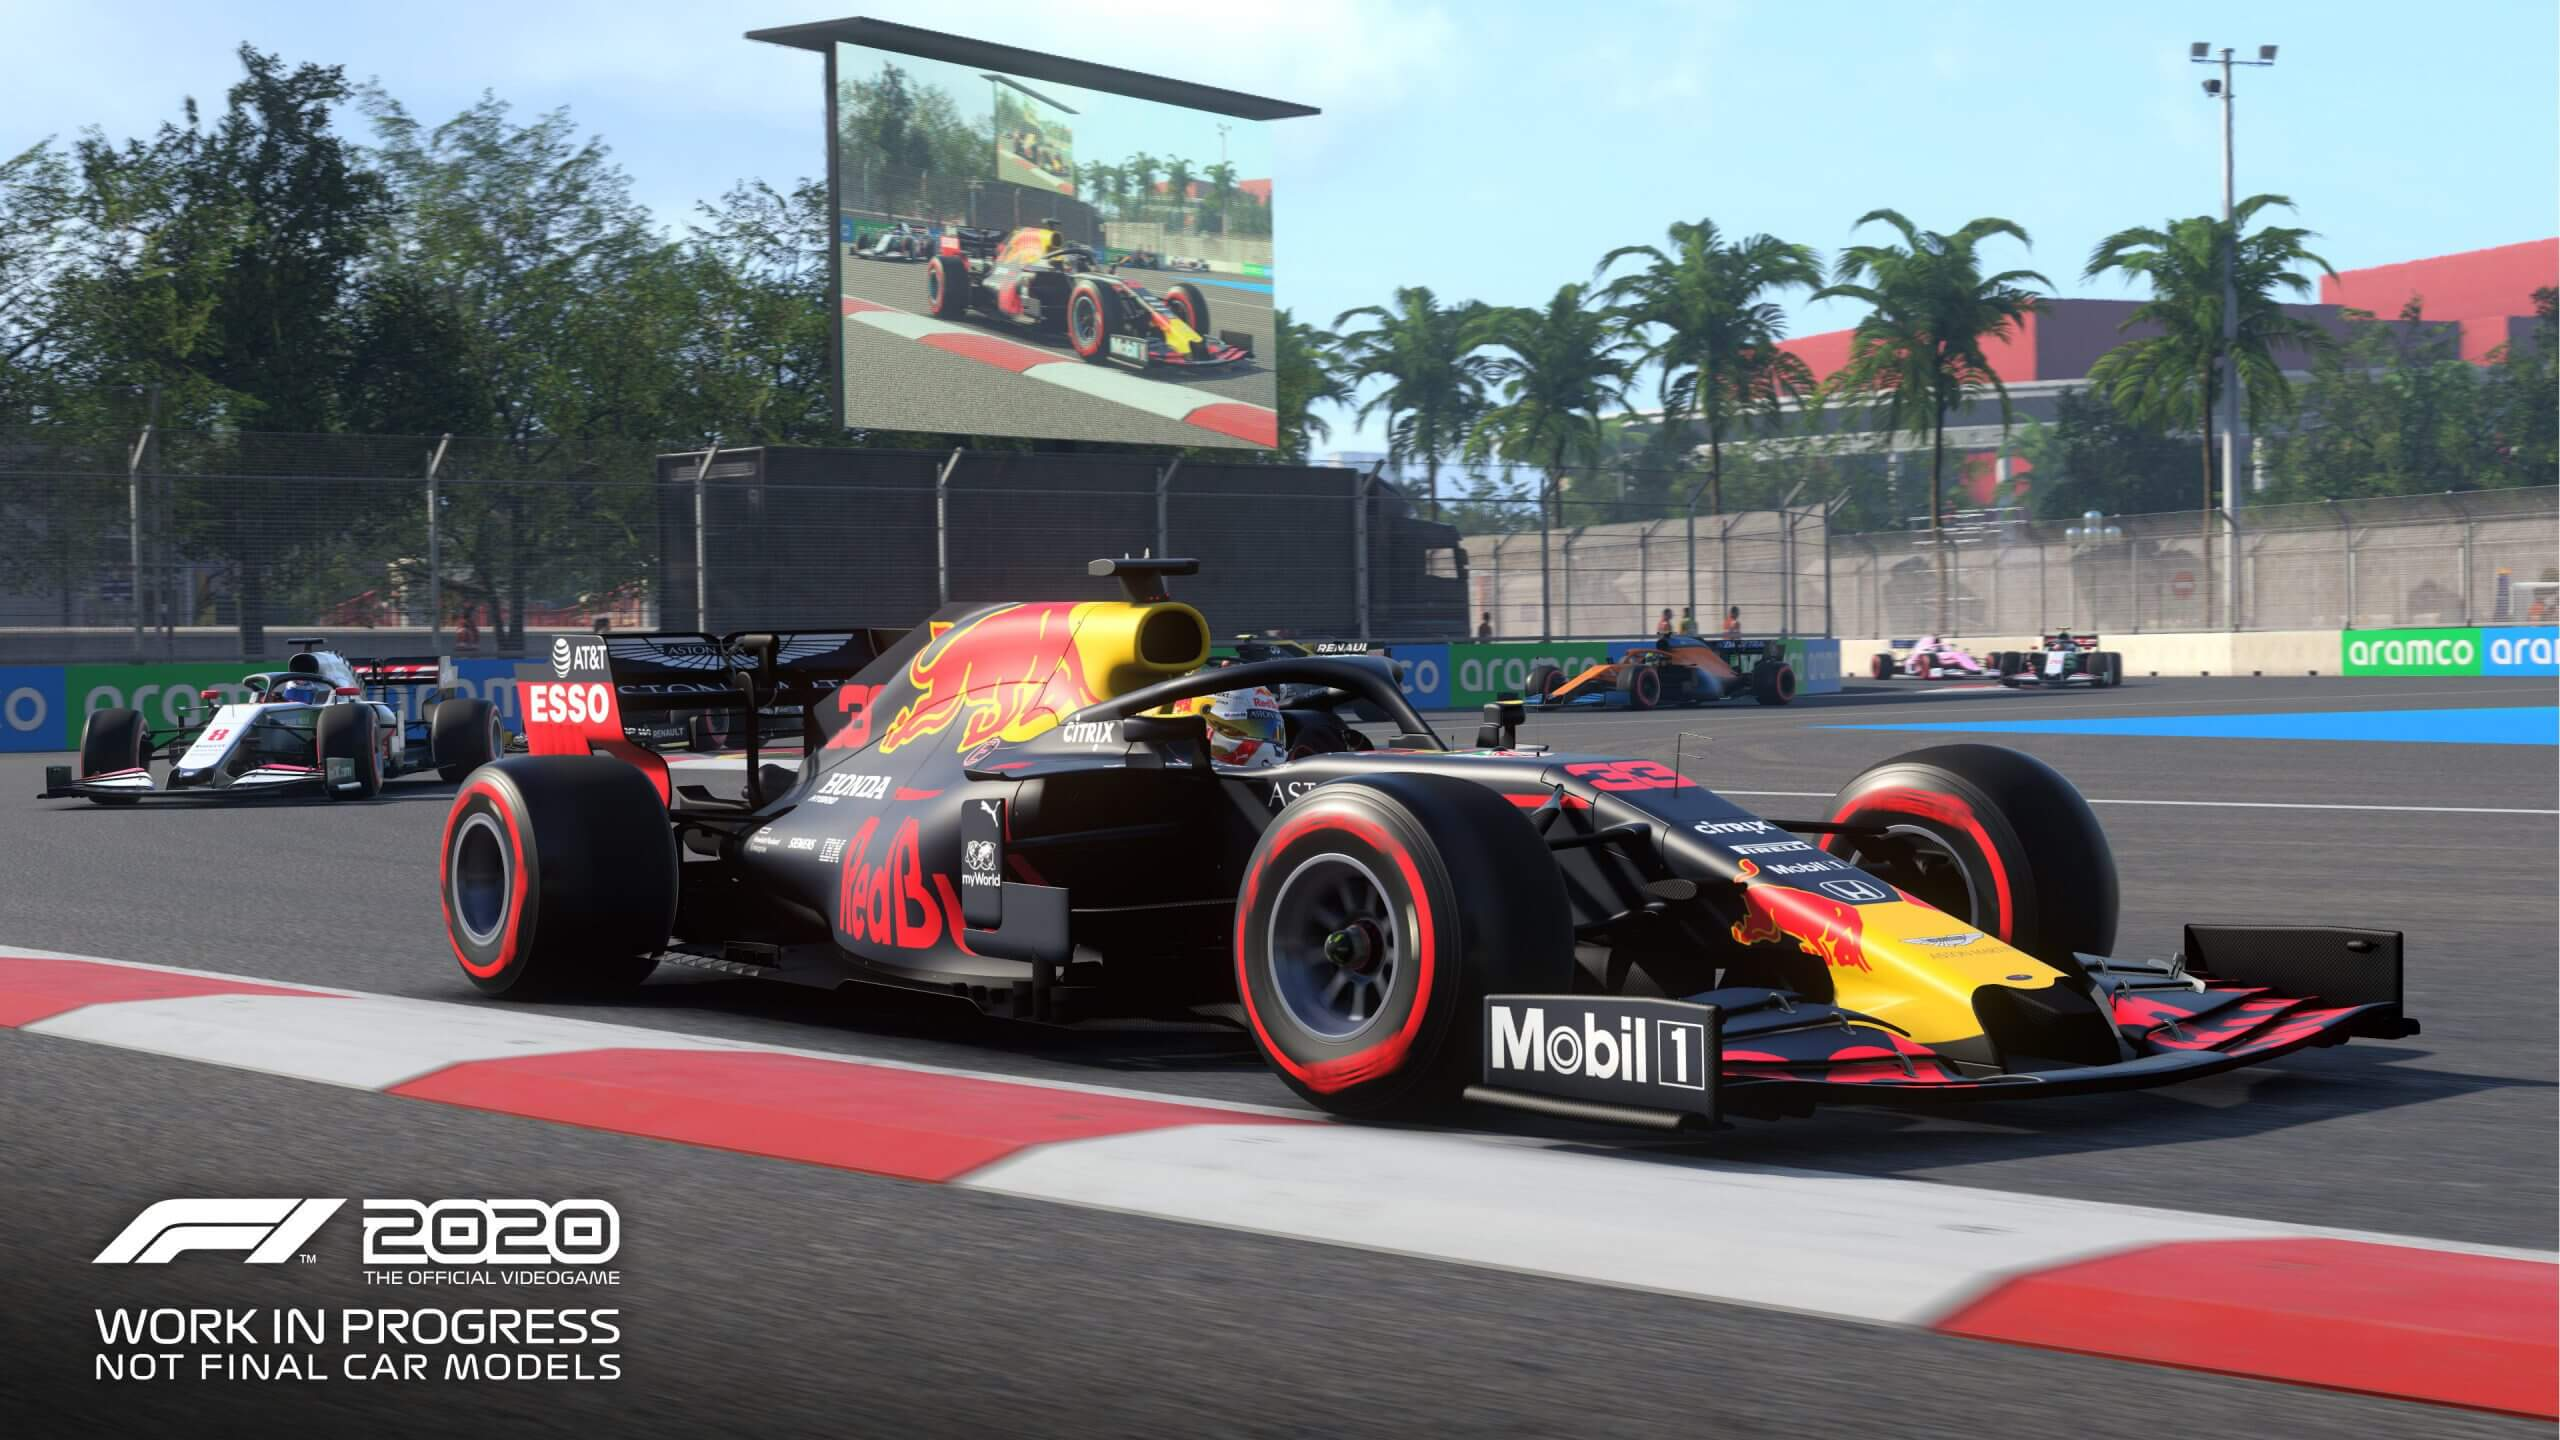 F1 2020 (PC, PS4, Xbox One) - 1337 Games